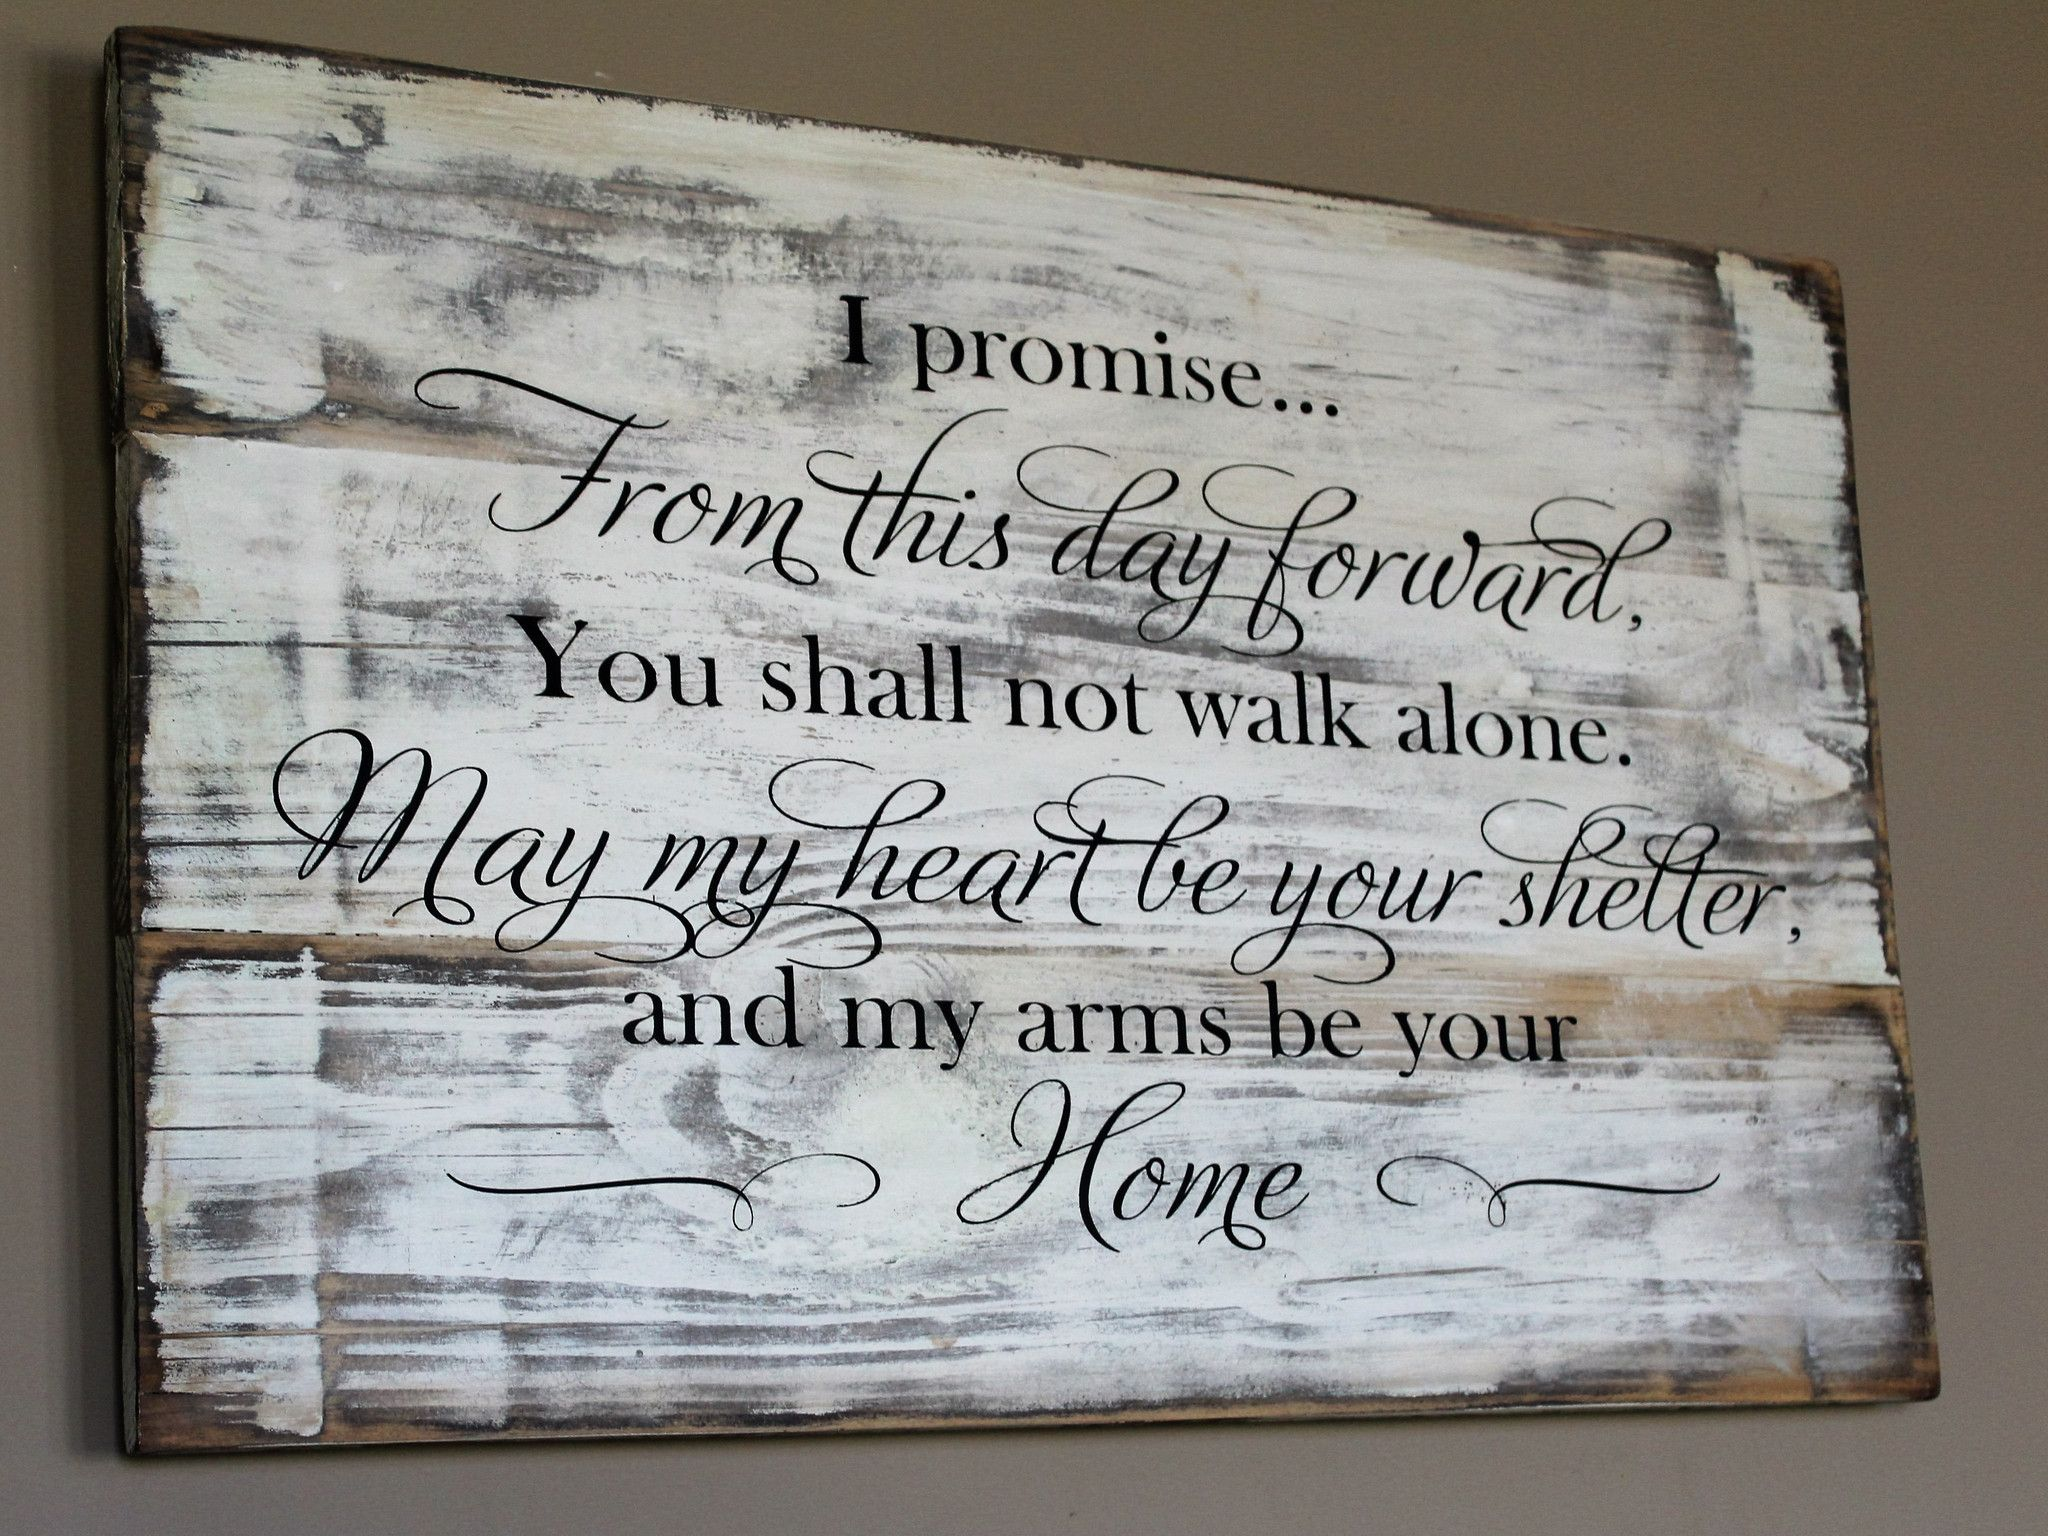 Rustic wedding vow wood sign from this day forward carved wood rustic wedding vow sign made from reclaimed wood from this day forward wood sign negle Choice Image